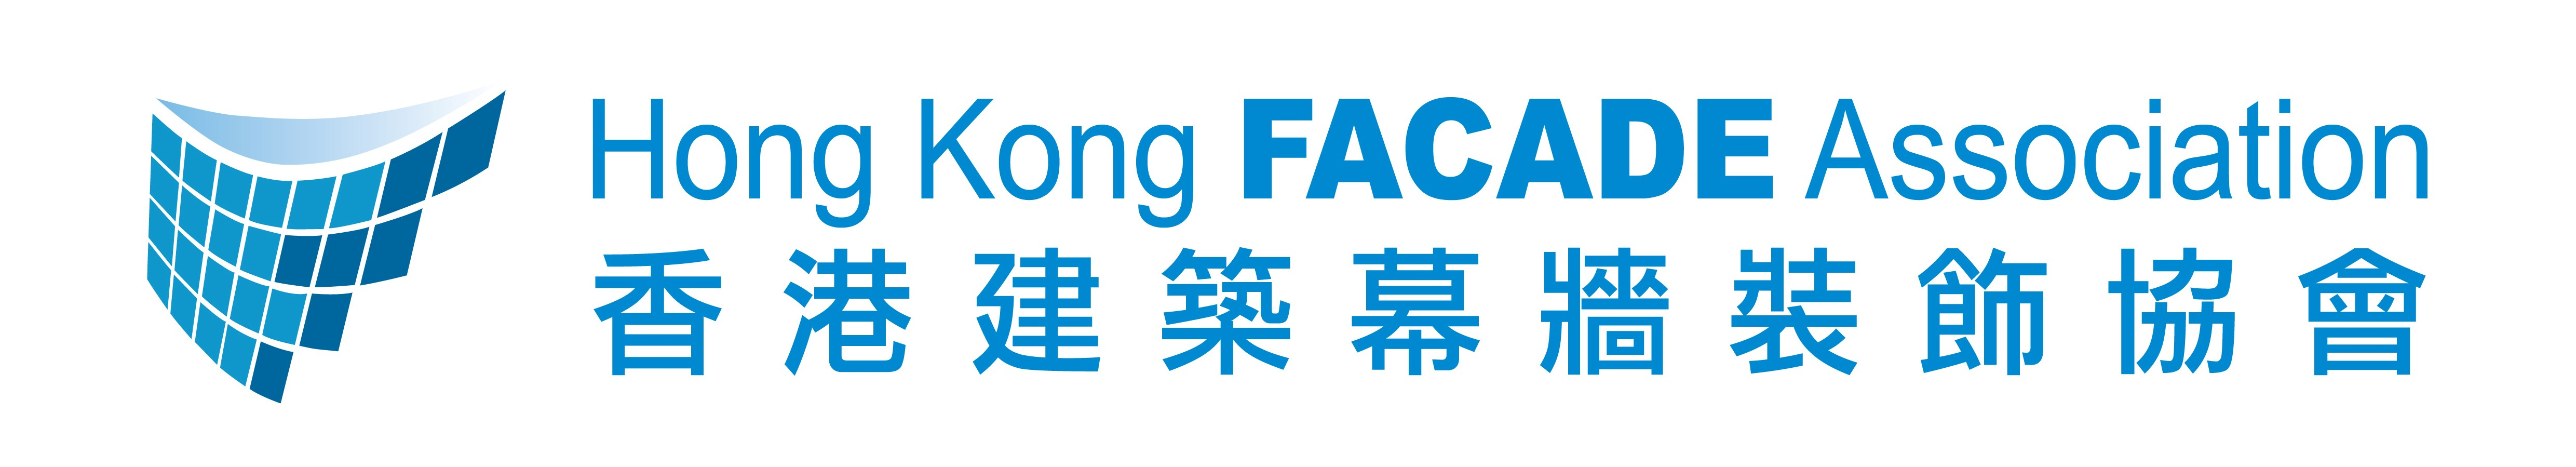 Hong Kong Facade Association